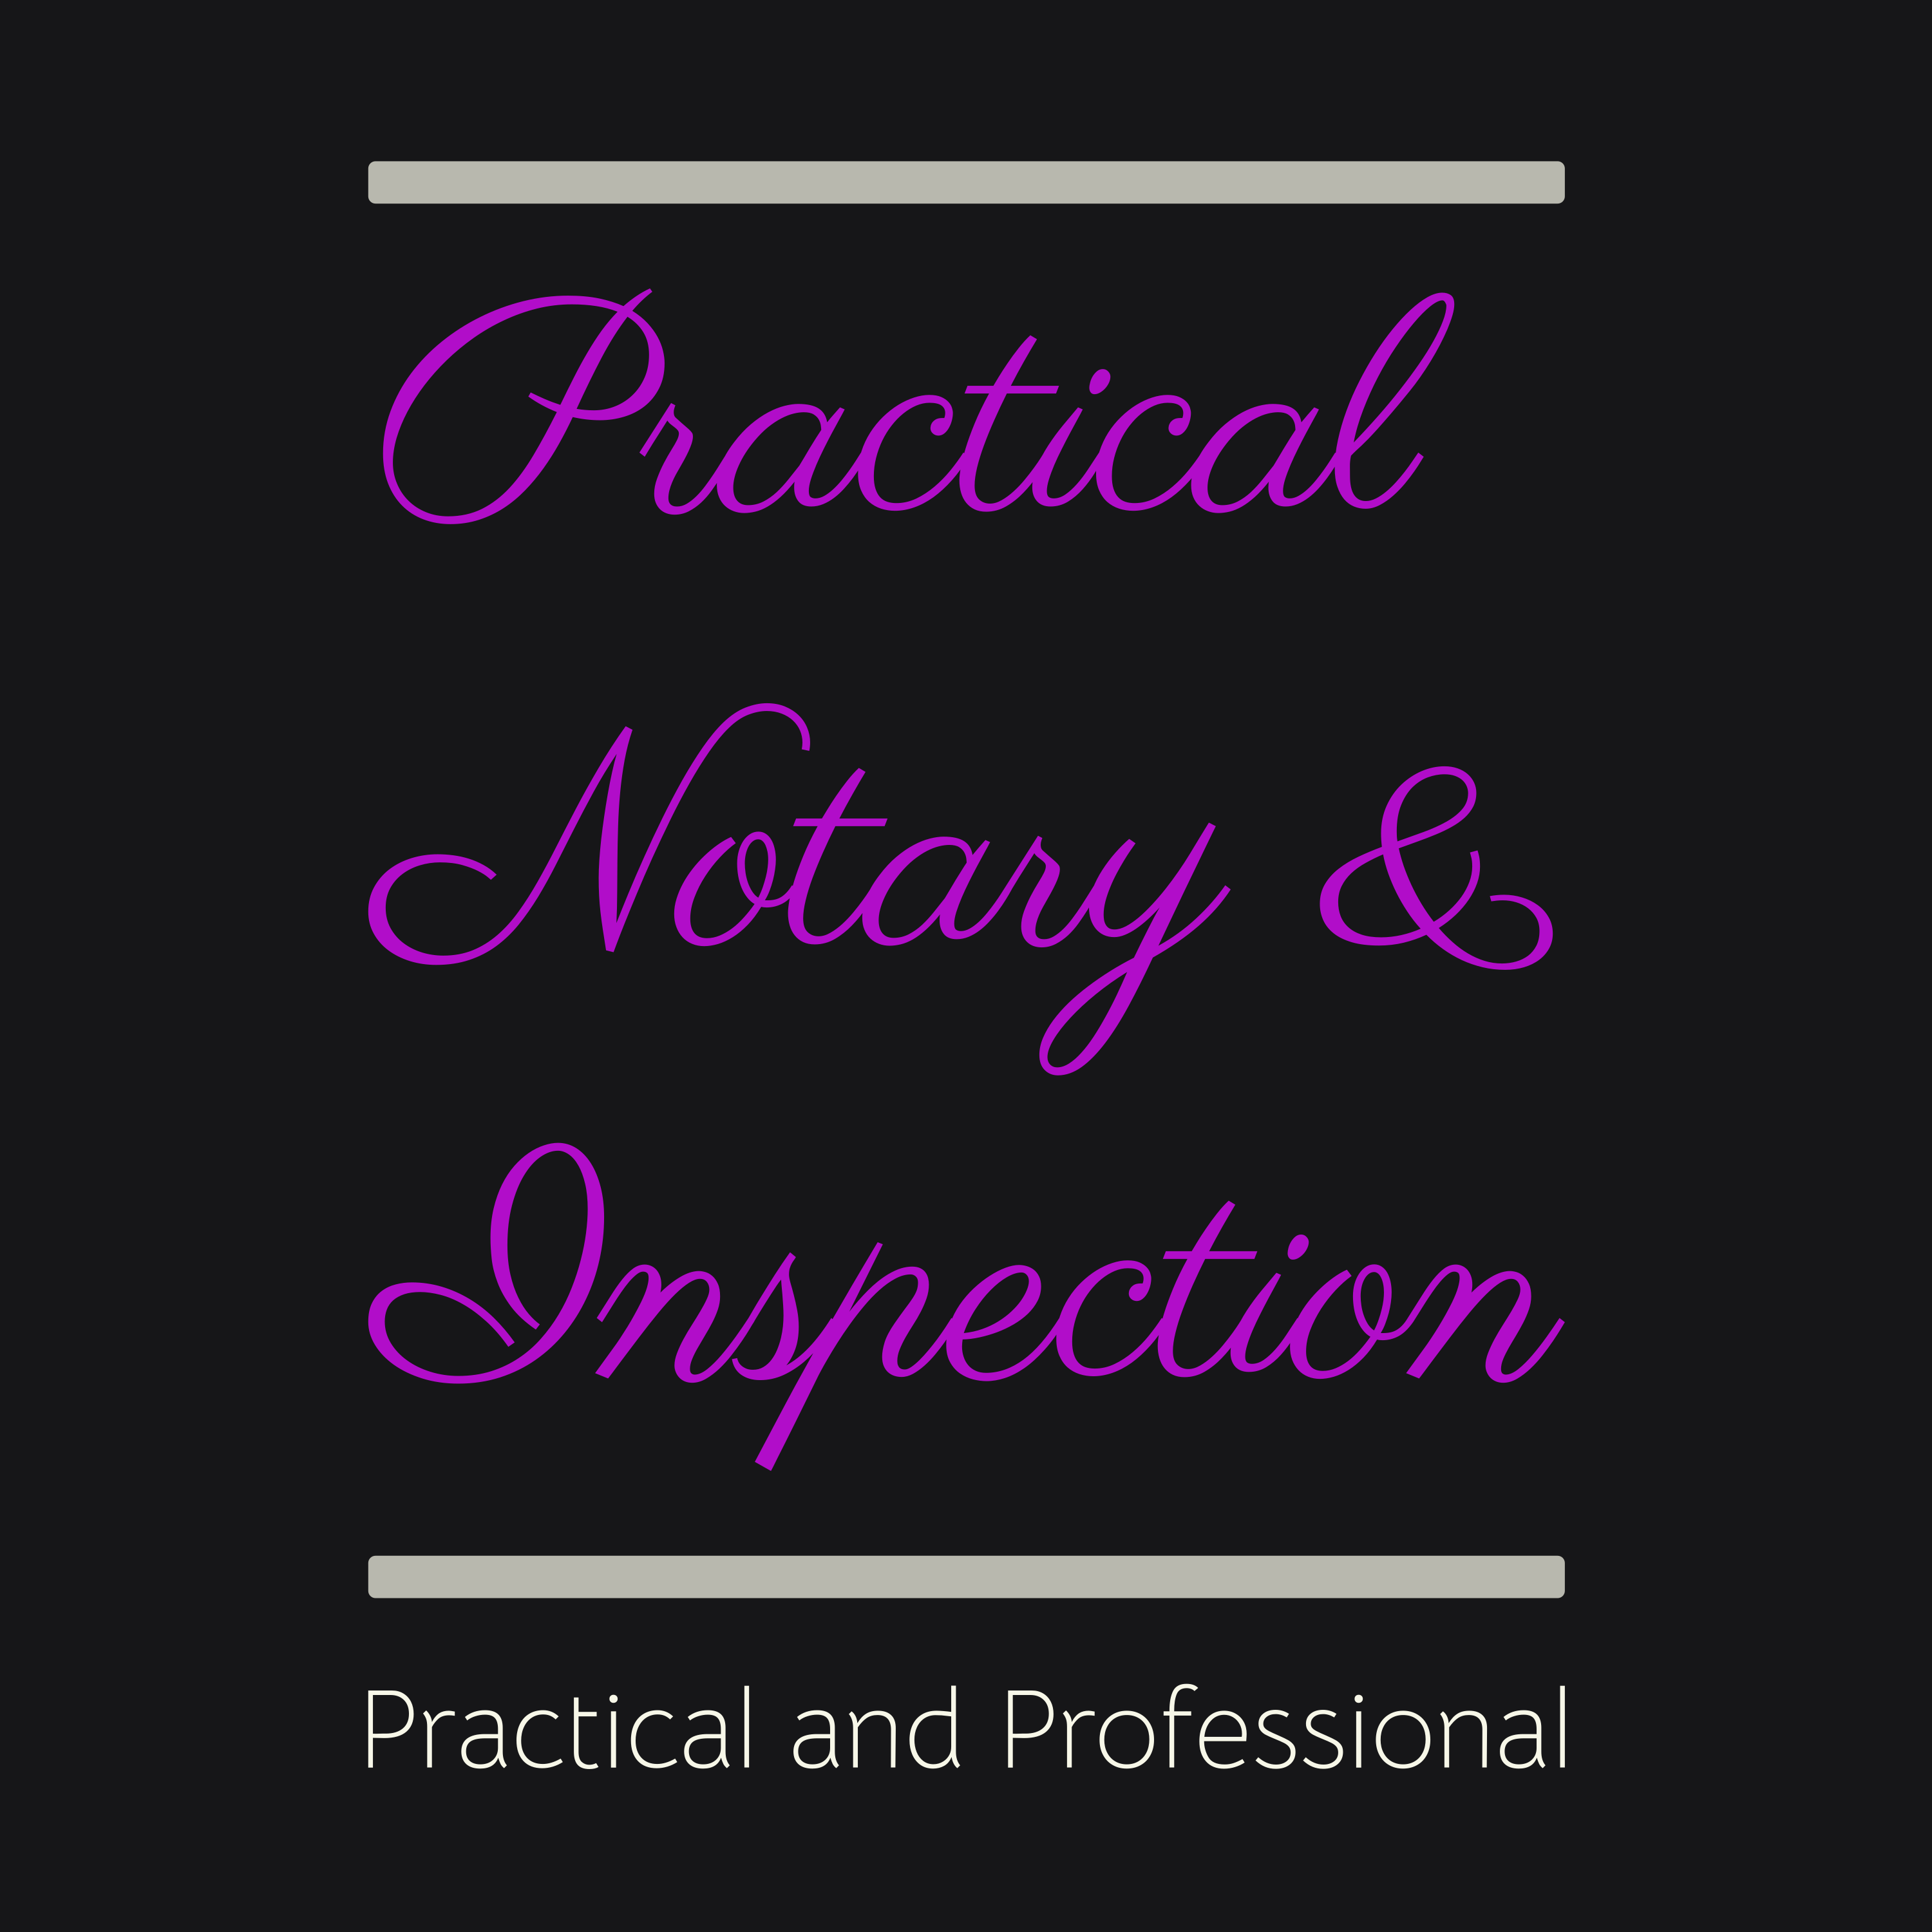 Practical Notary & Inspection